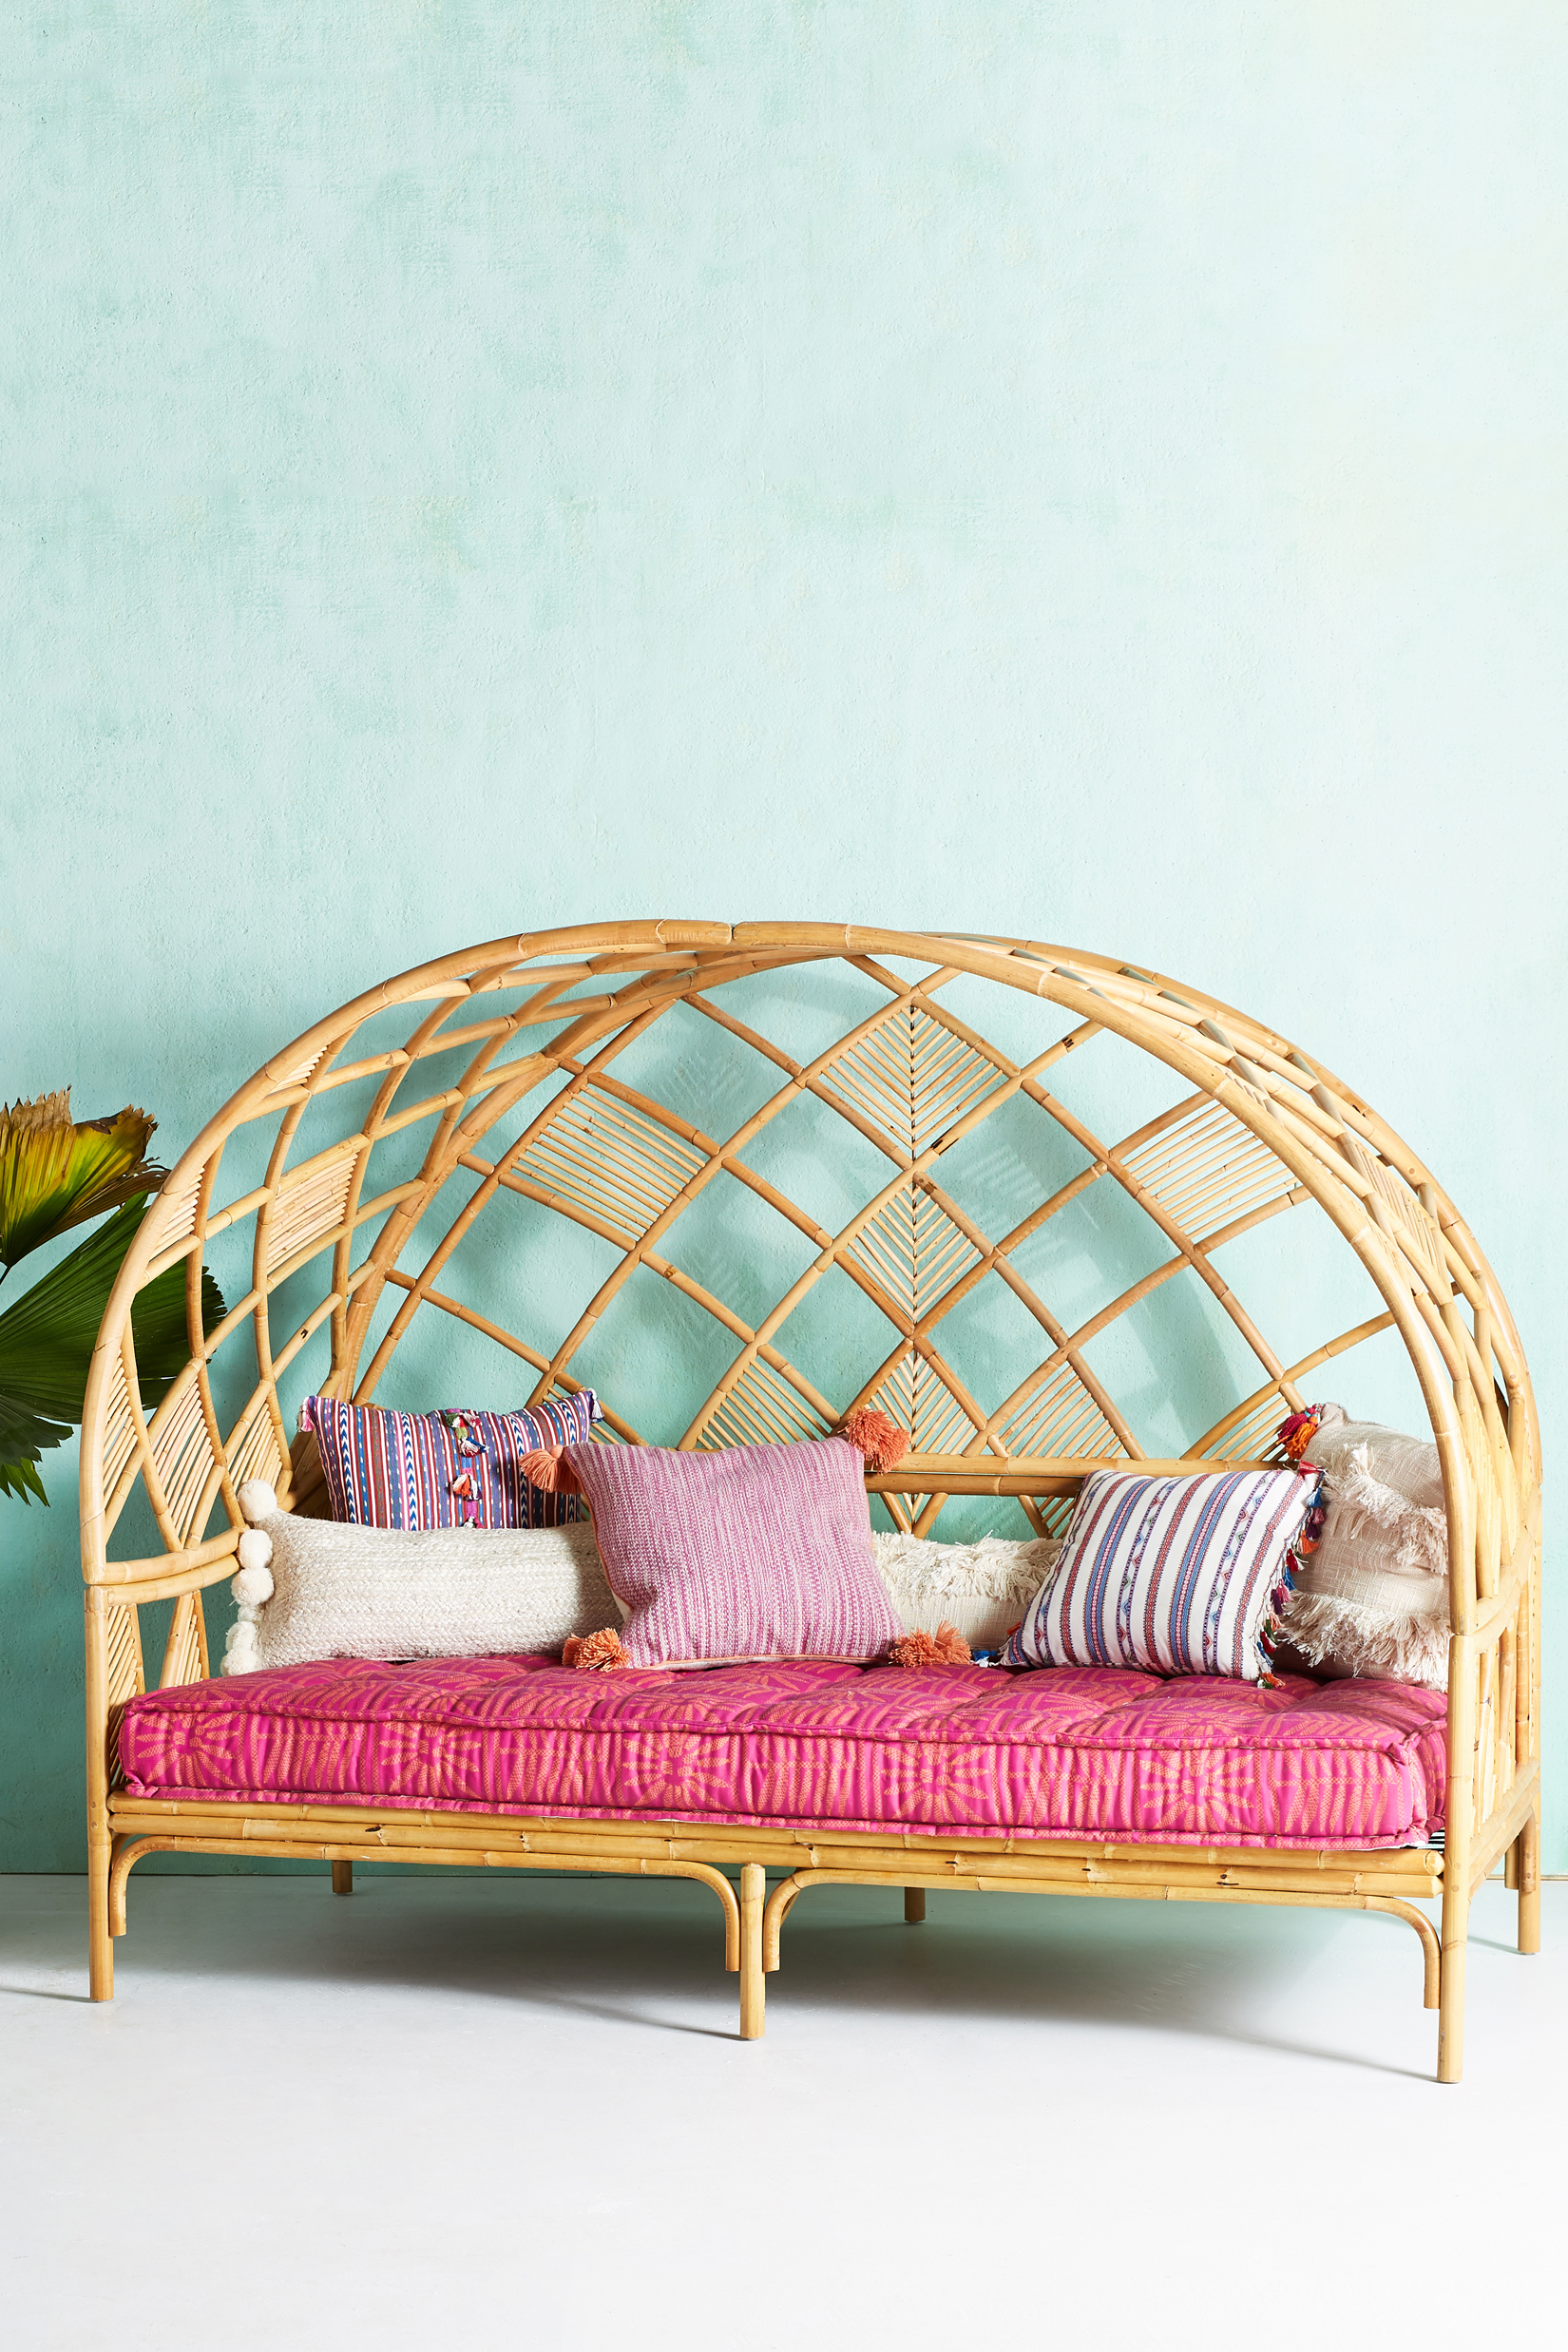 Anthropologie's New Summer Collection Is a Boho Dream